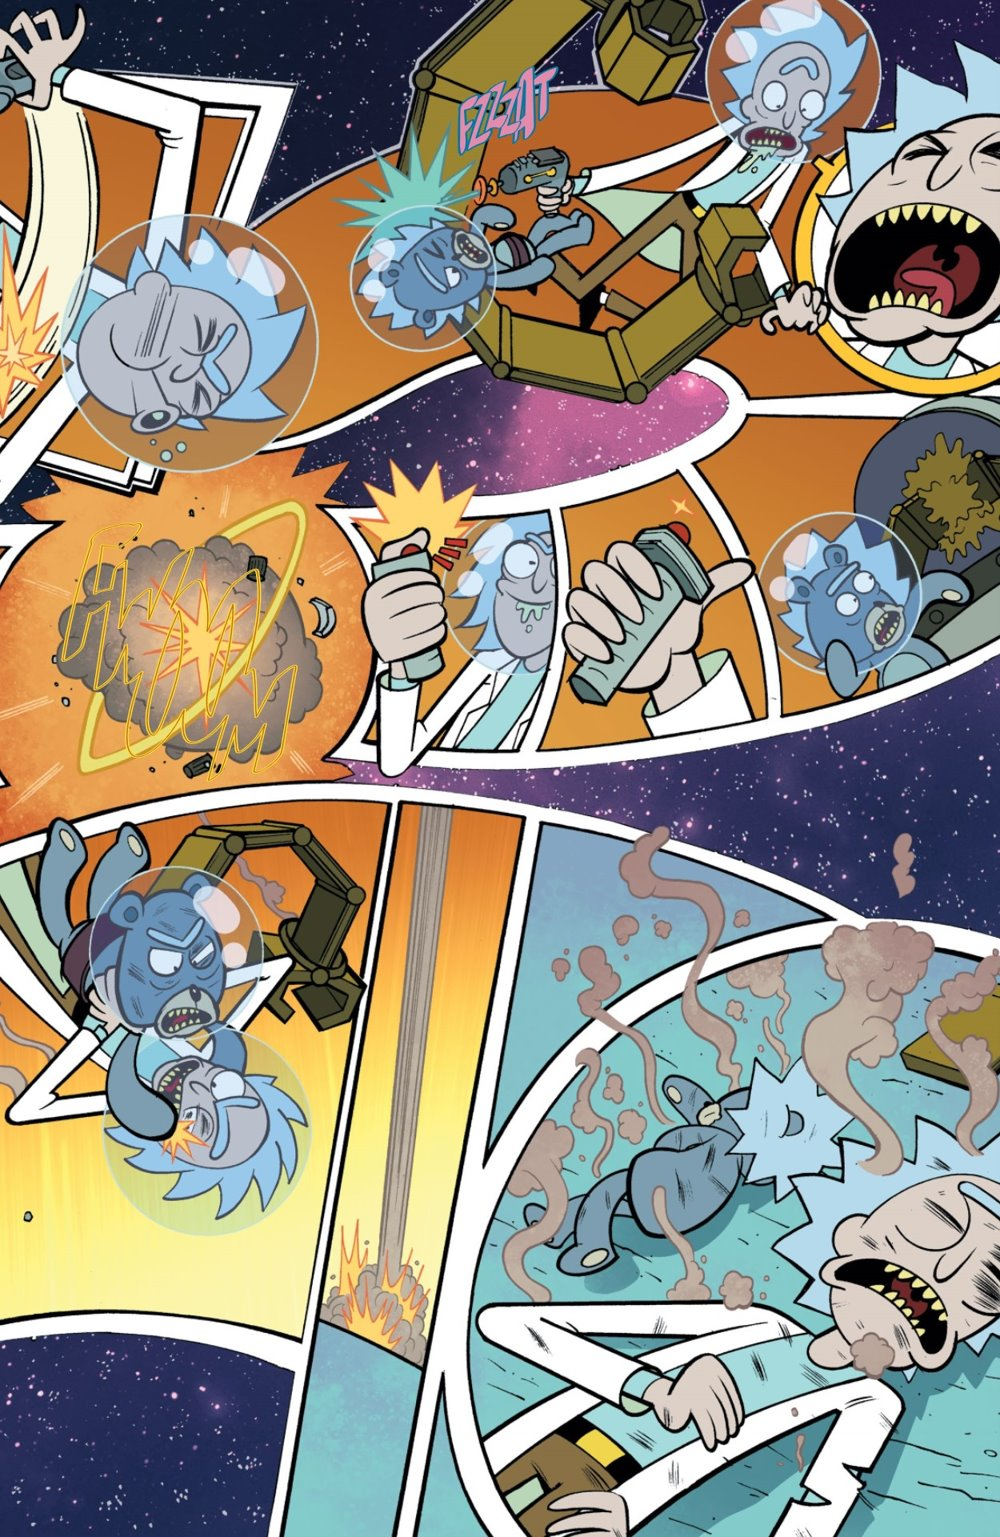 RICKMORTY-WORLDSAPART-2-REFERENCE-06 ComicList Previews: RICK AND MORTY WORLDS APART #2